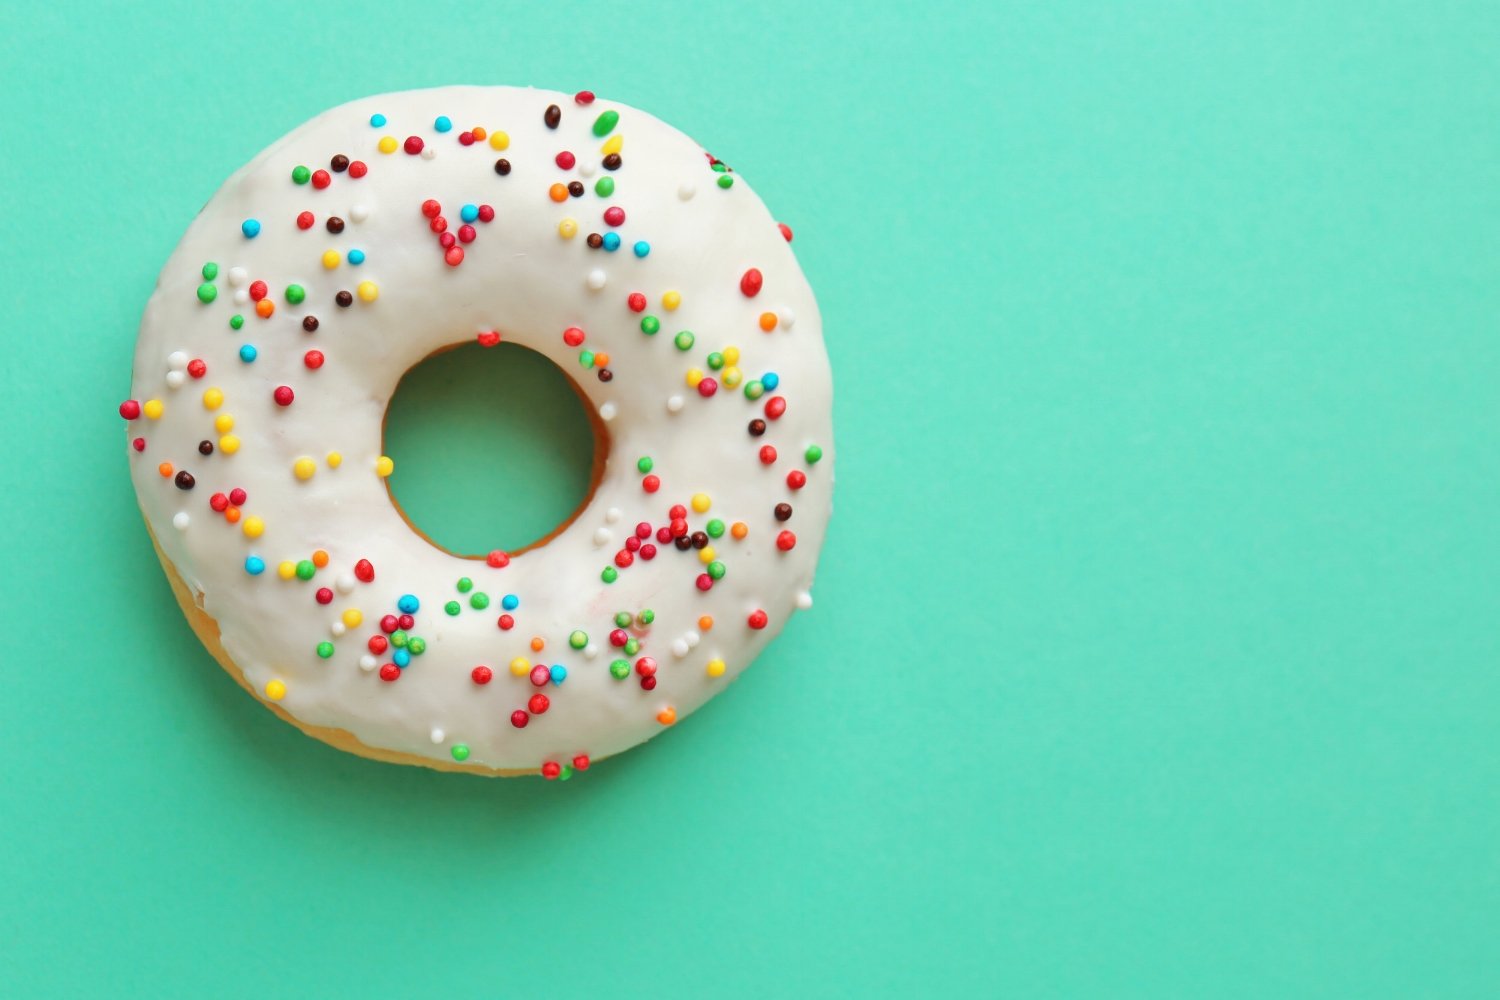 This is not your average donut...